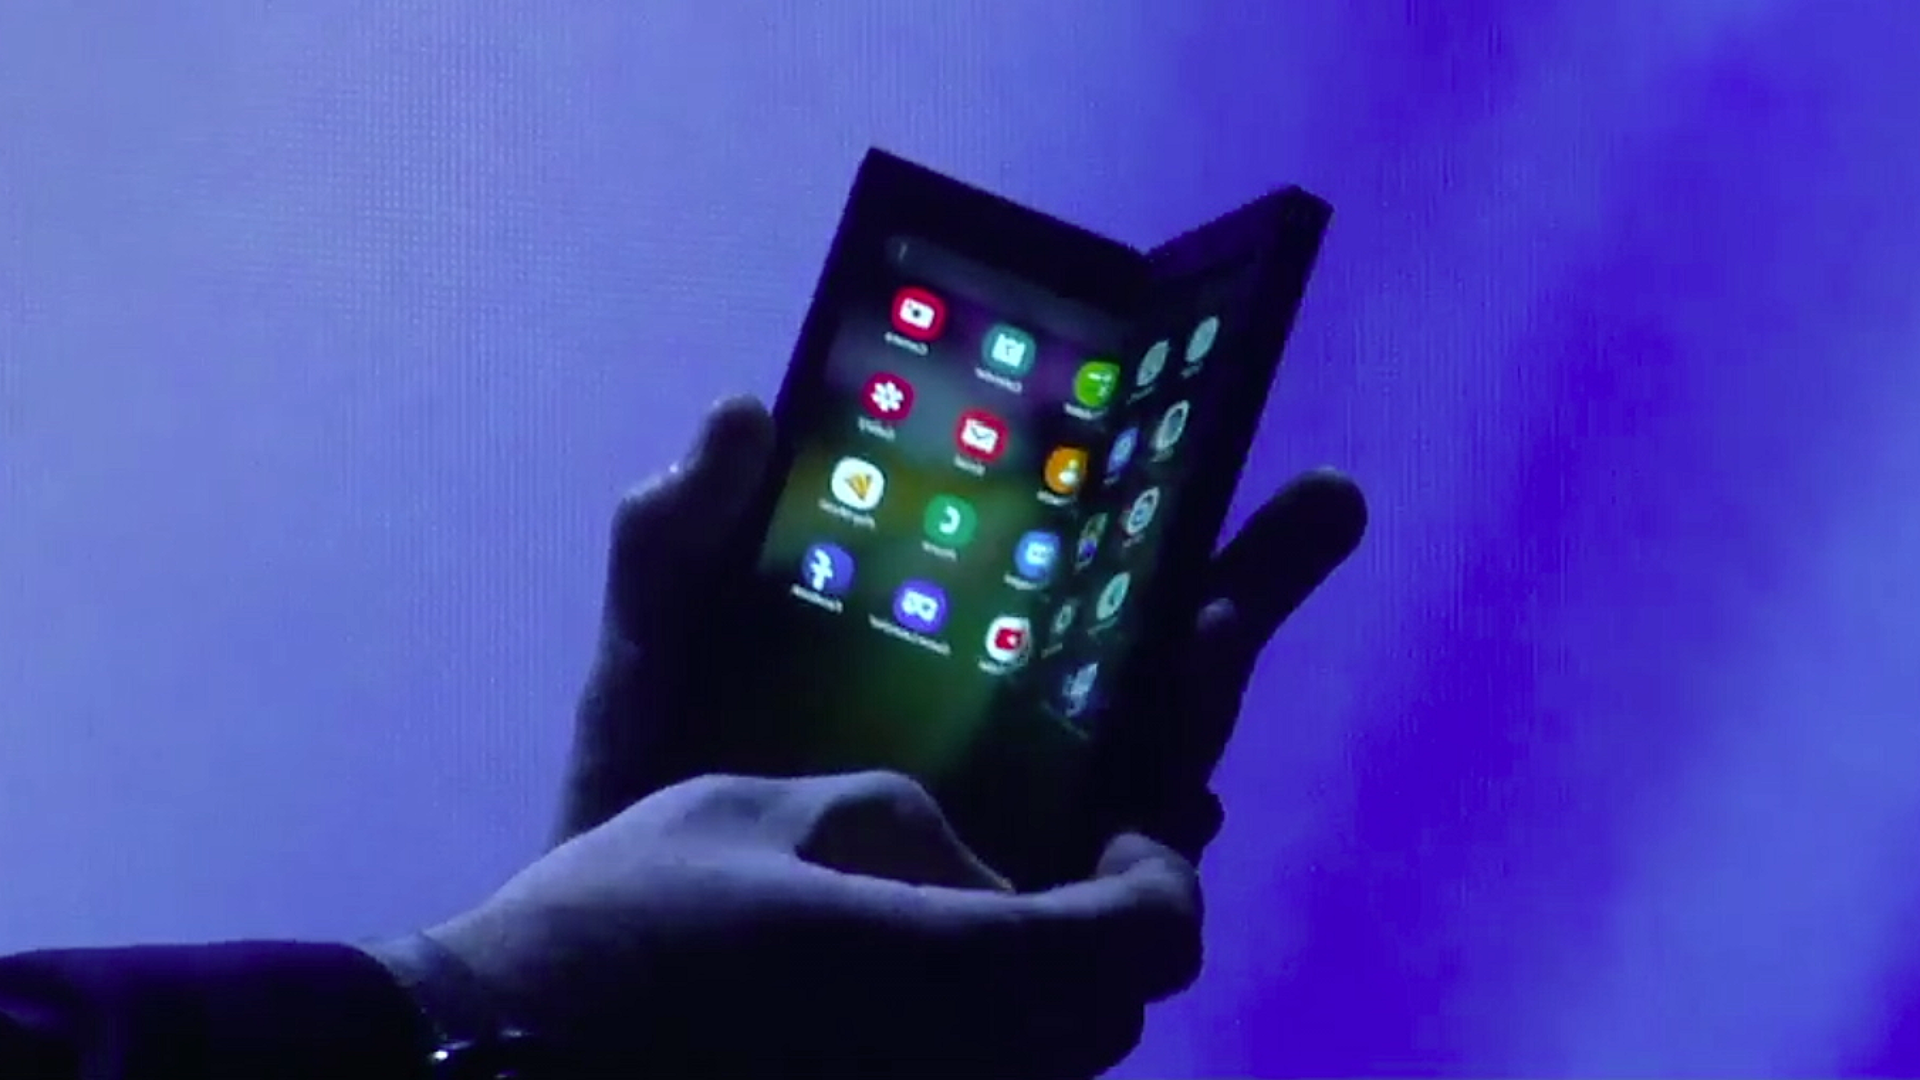 For Samsung's foldable phone, these apps would make a good start